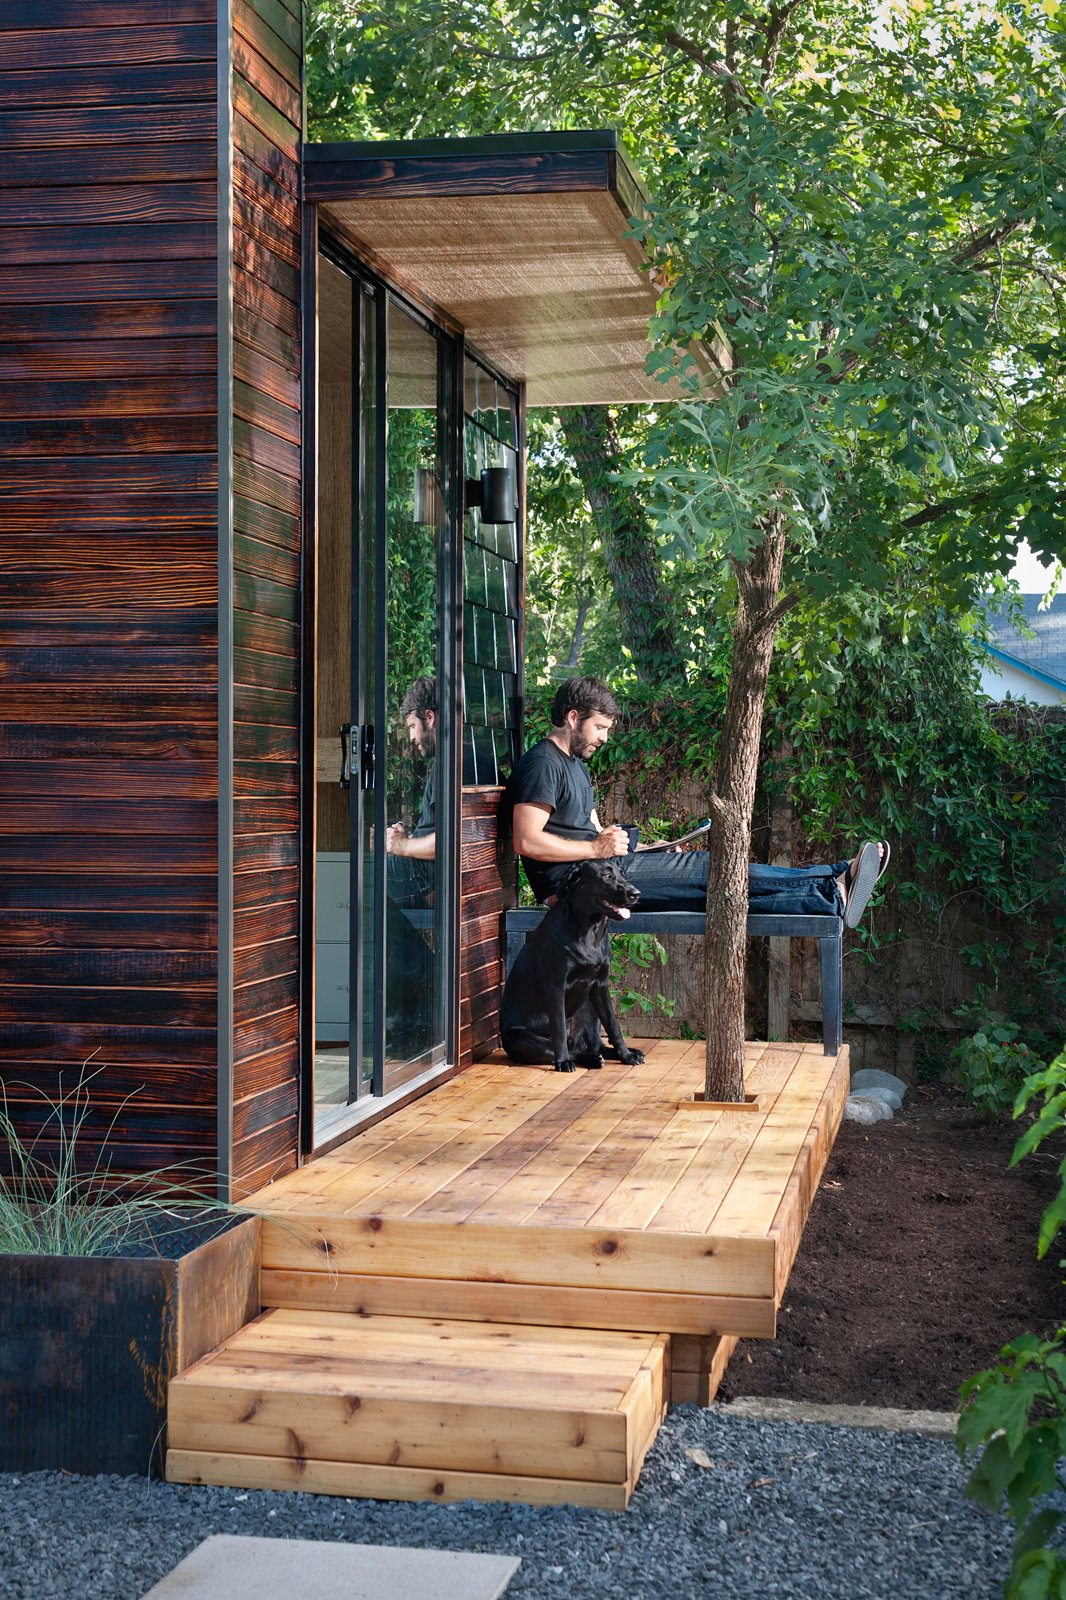 Studio owner Joey Williams uses his space to work from home as an Austin-based media director.  Prefab Homes by Dwell from On Your Mark, Get Sett